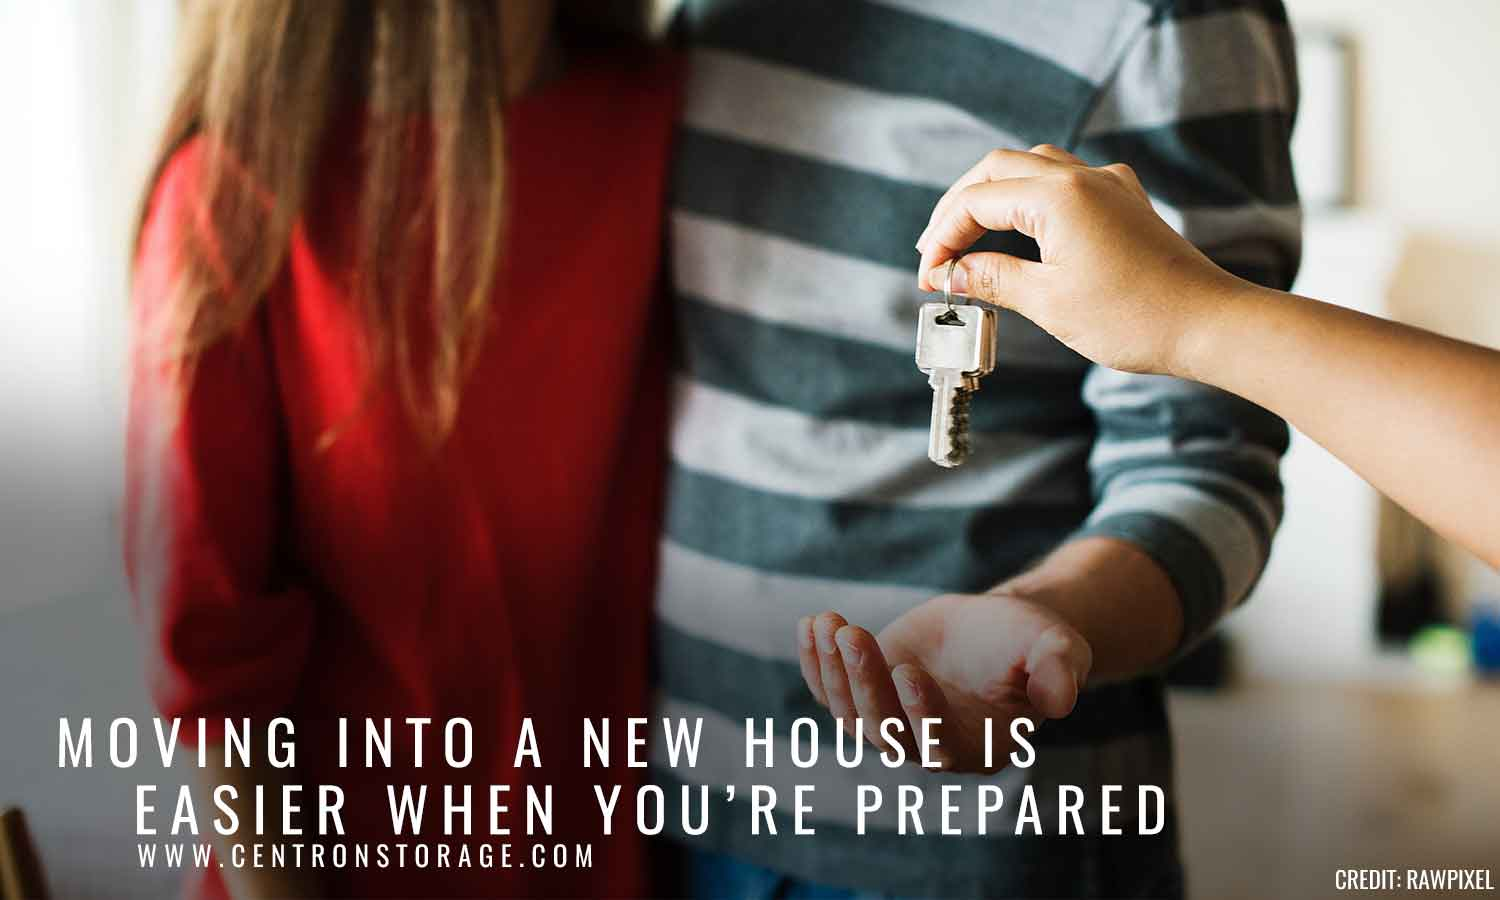 Moving into a new house is easier when you're prepared